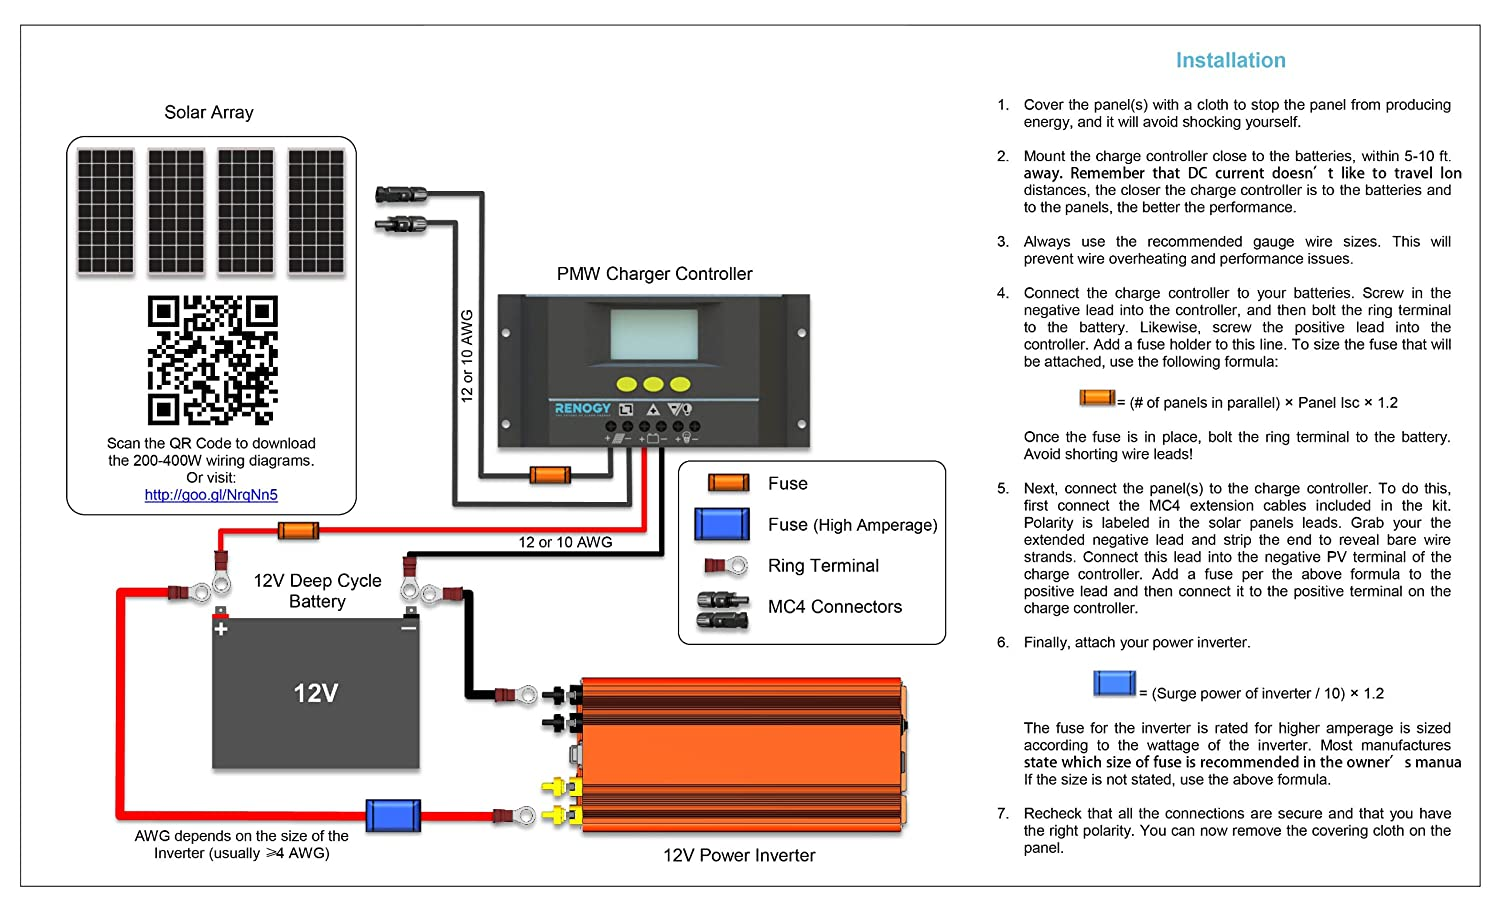 extension cord plug wiring diagram 1990 crx radio cheap rv living.com -installing a renogy 200 watt solar kit